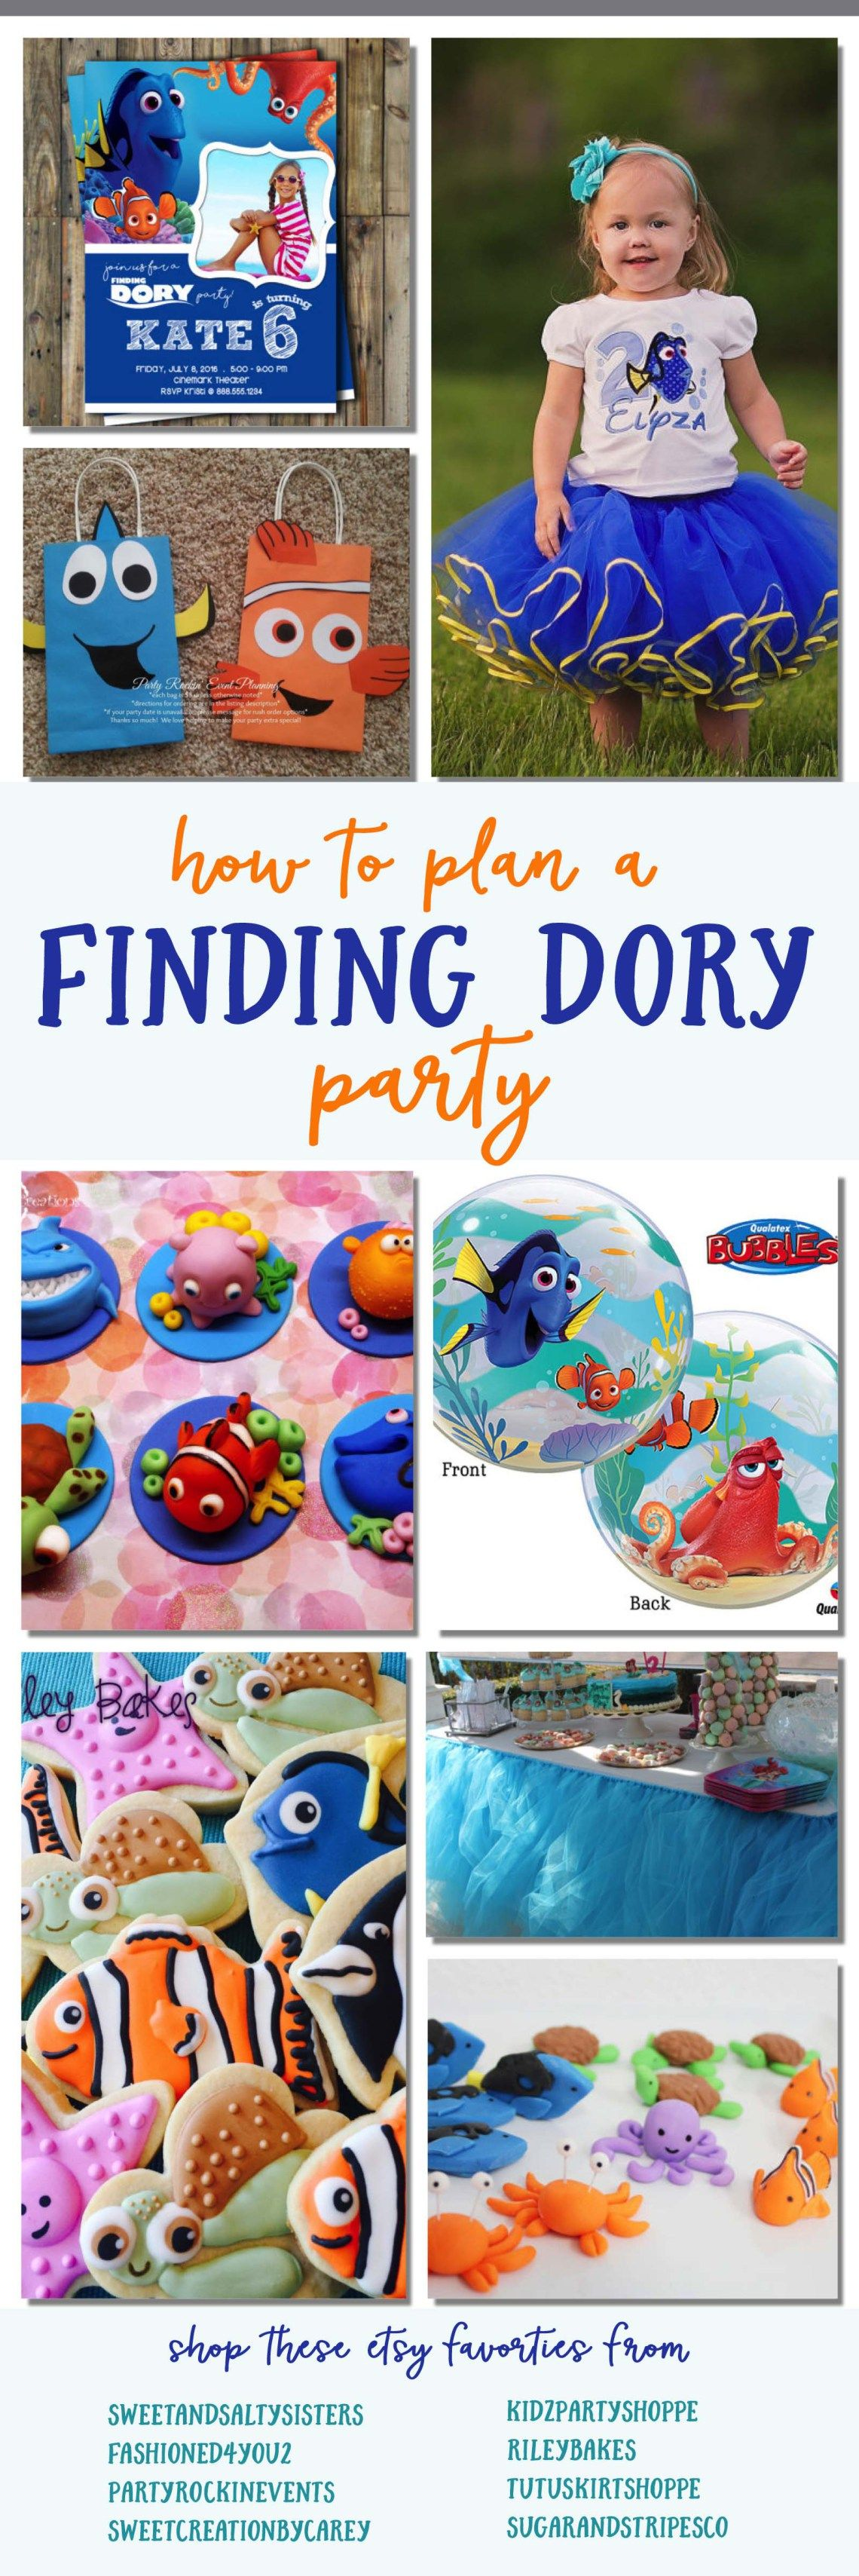 Finding Dory Party Planner | Finding dory, Party planners and ...